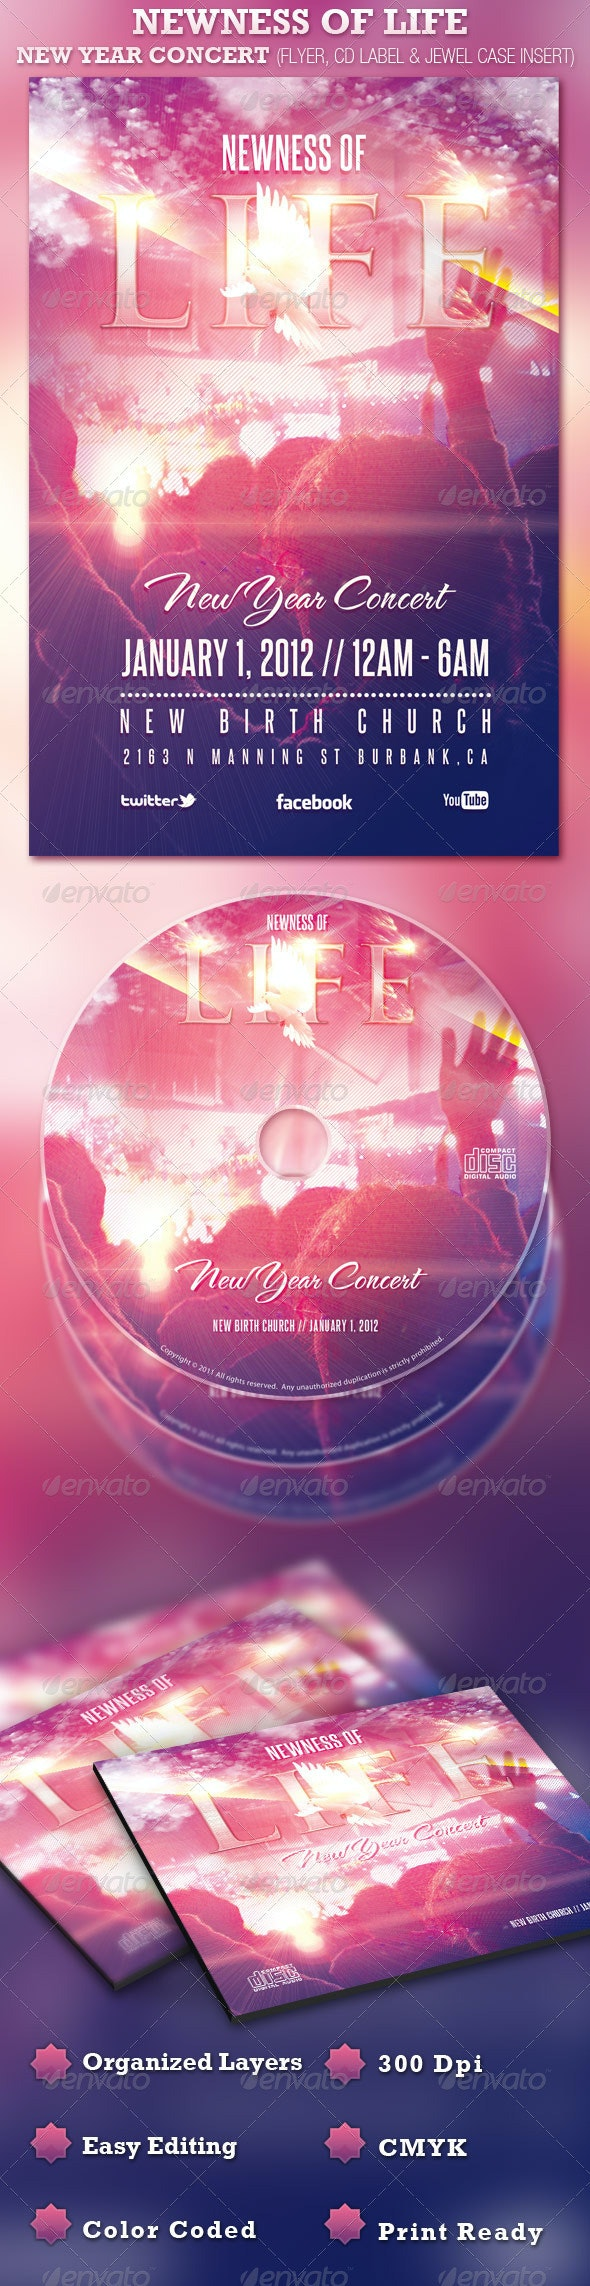 Newness of Life Concert Flyer and CD  - Church Flyers